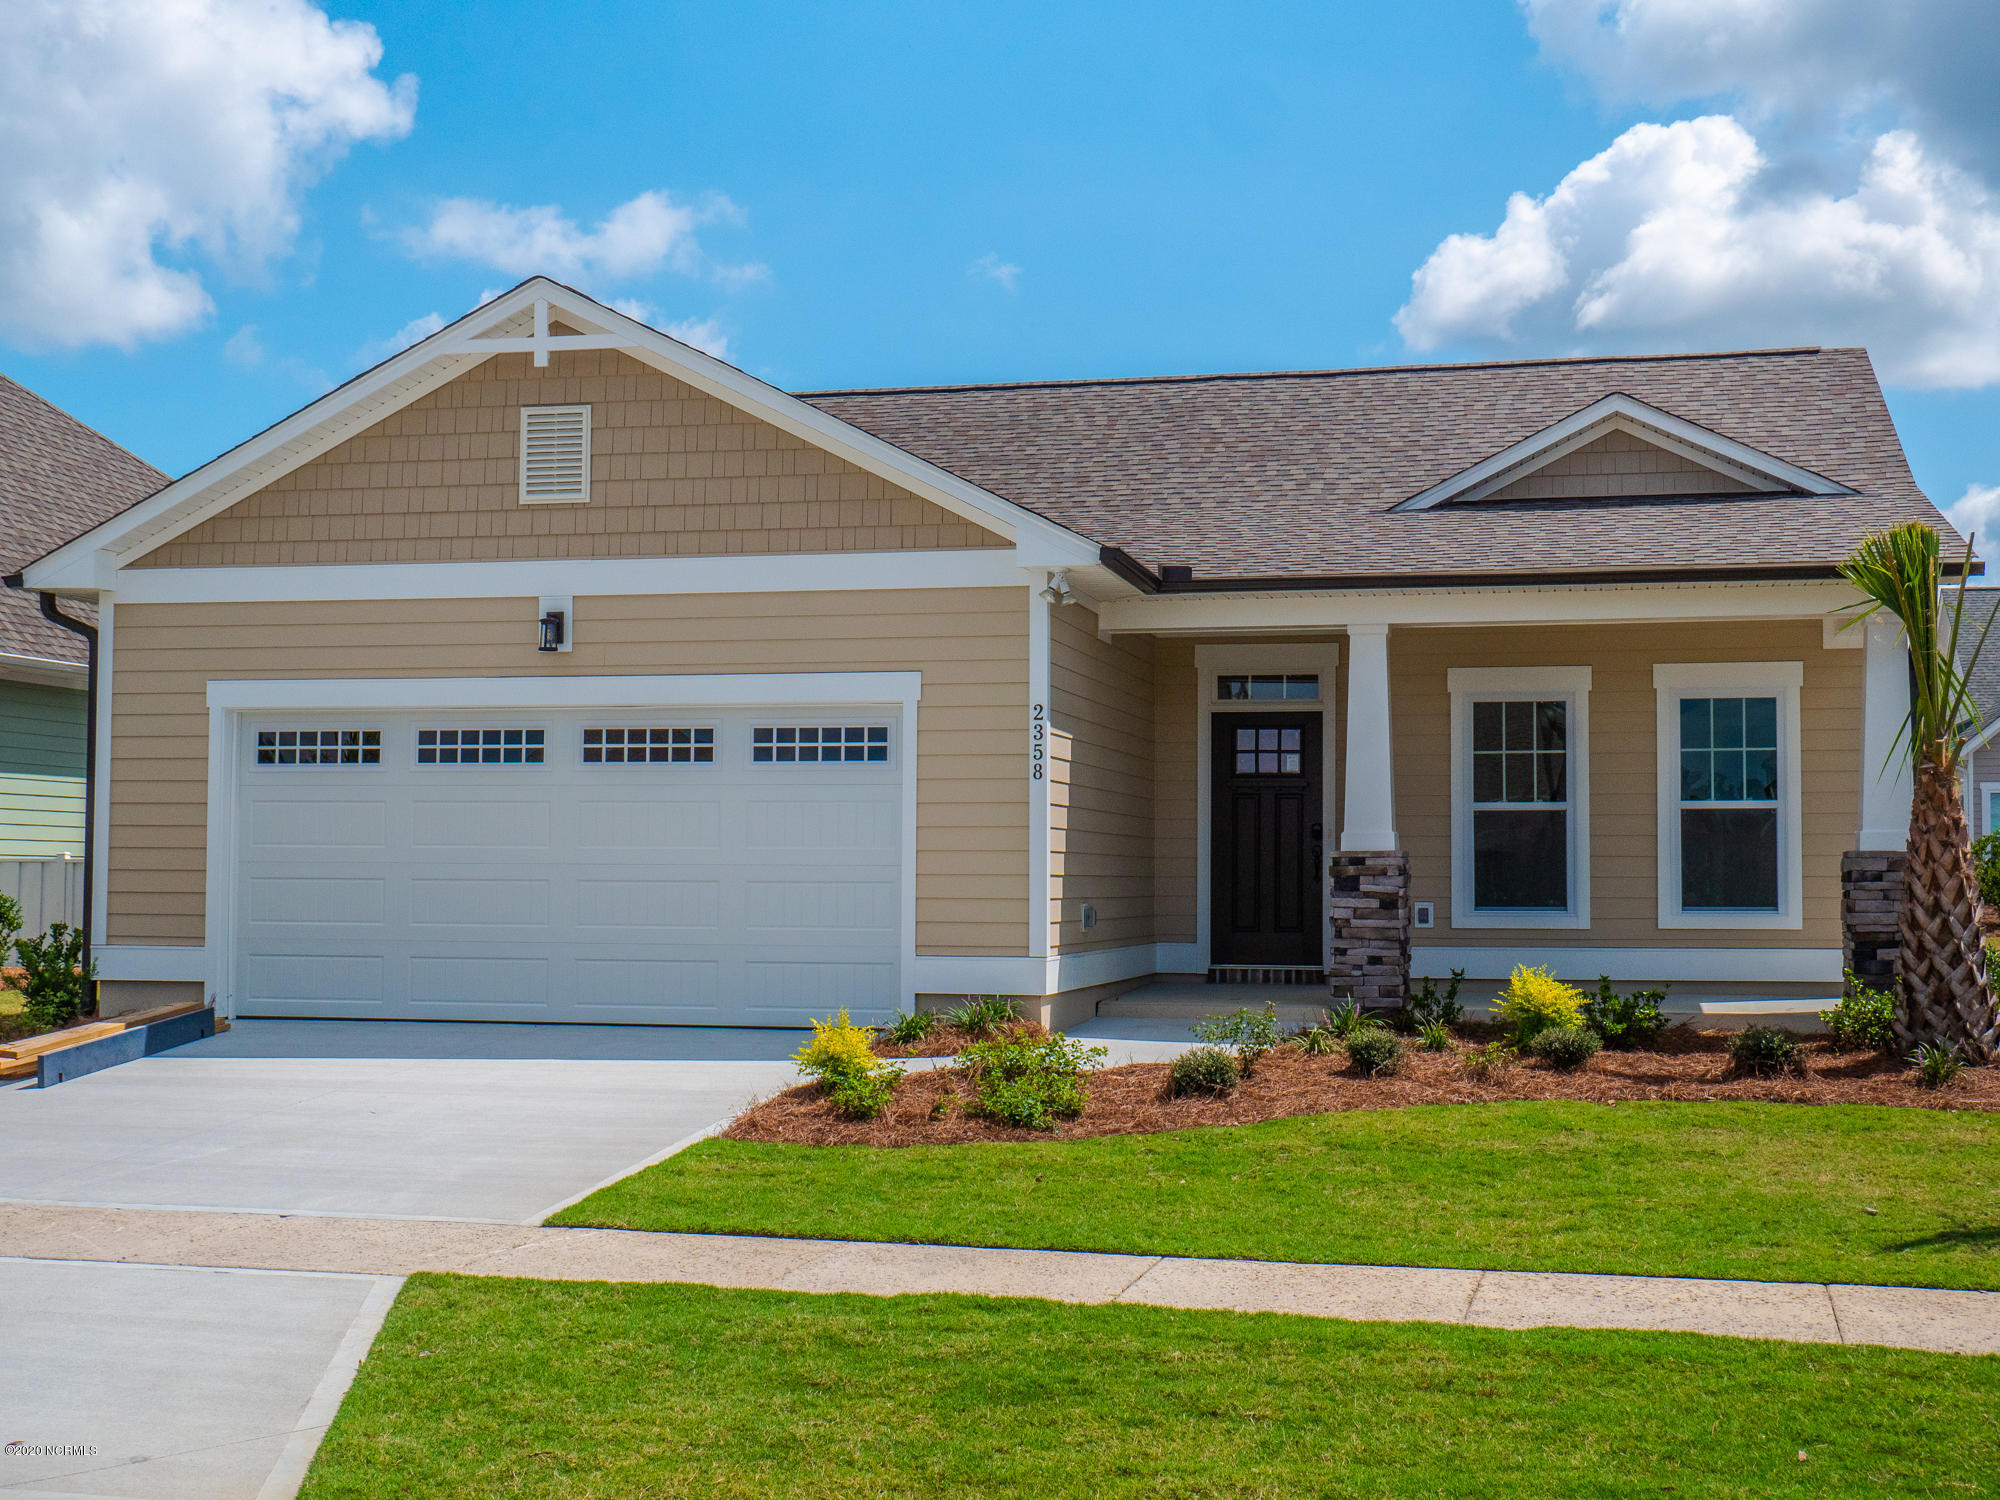 2358 Amorosa Loop, Leland, North Carolina 28451, 3 Bedrooms Bedrooms, 6 Rooms Rooms,2 BathroomsBathrooms,Single family residence,For sale,Amorosa,100221972